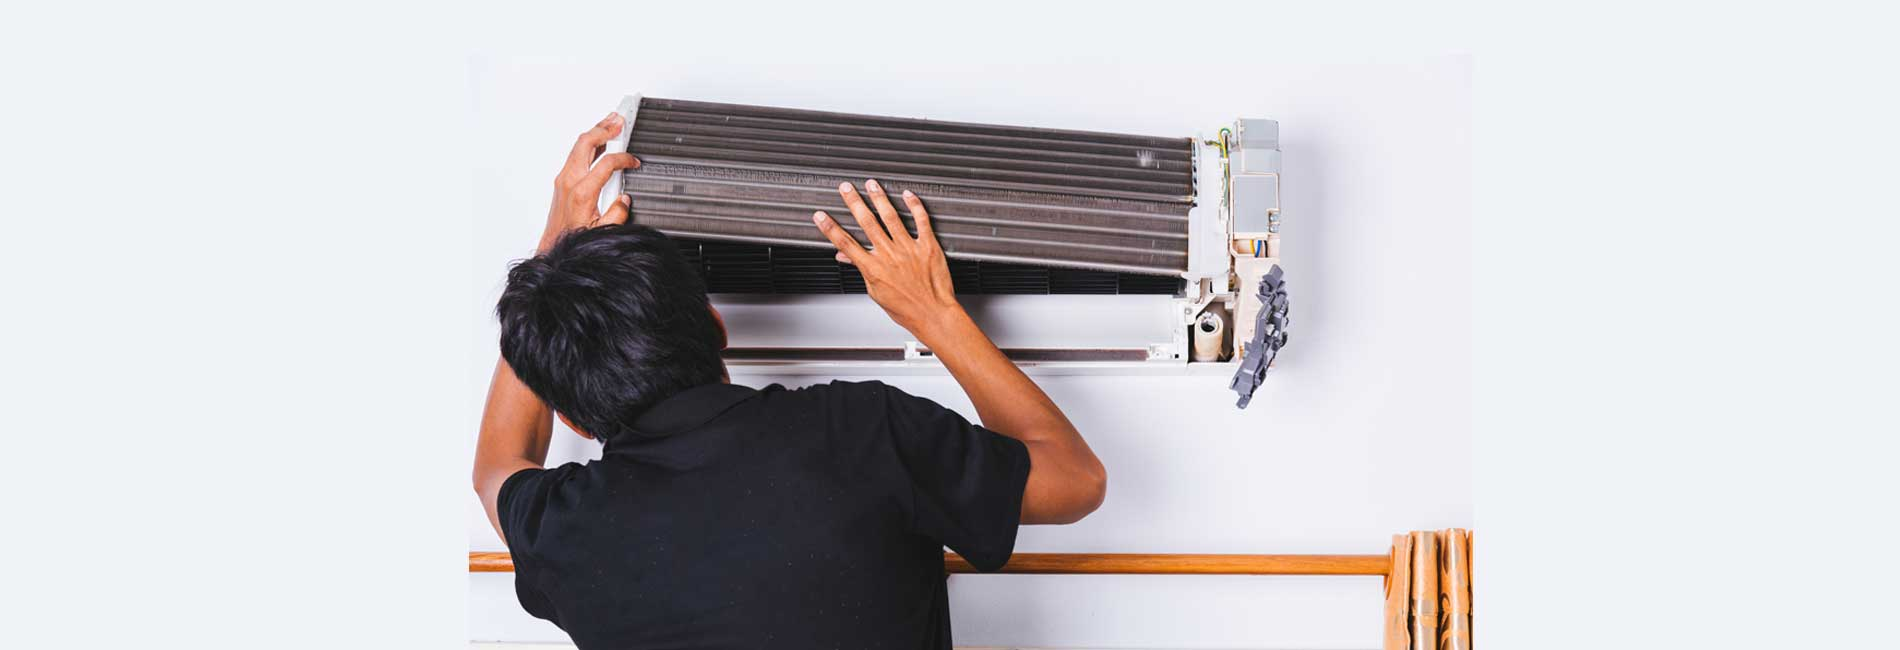 Air Conditioner Service in Otteri